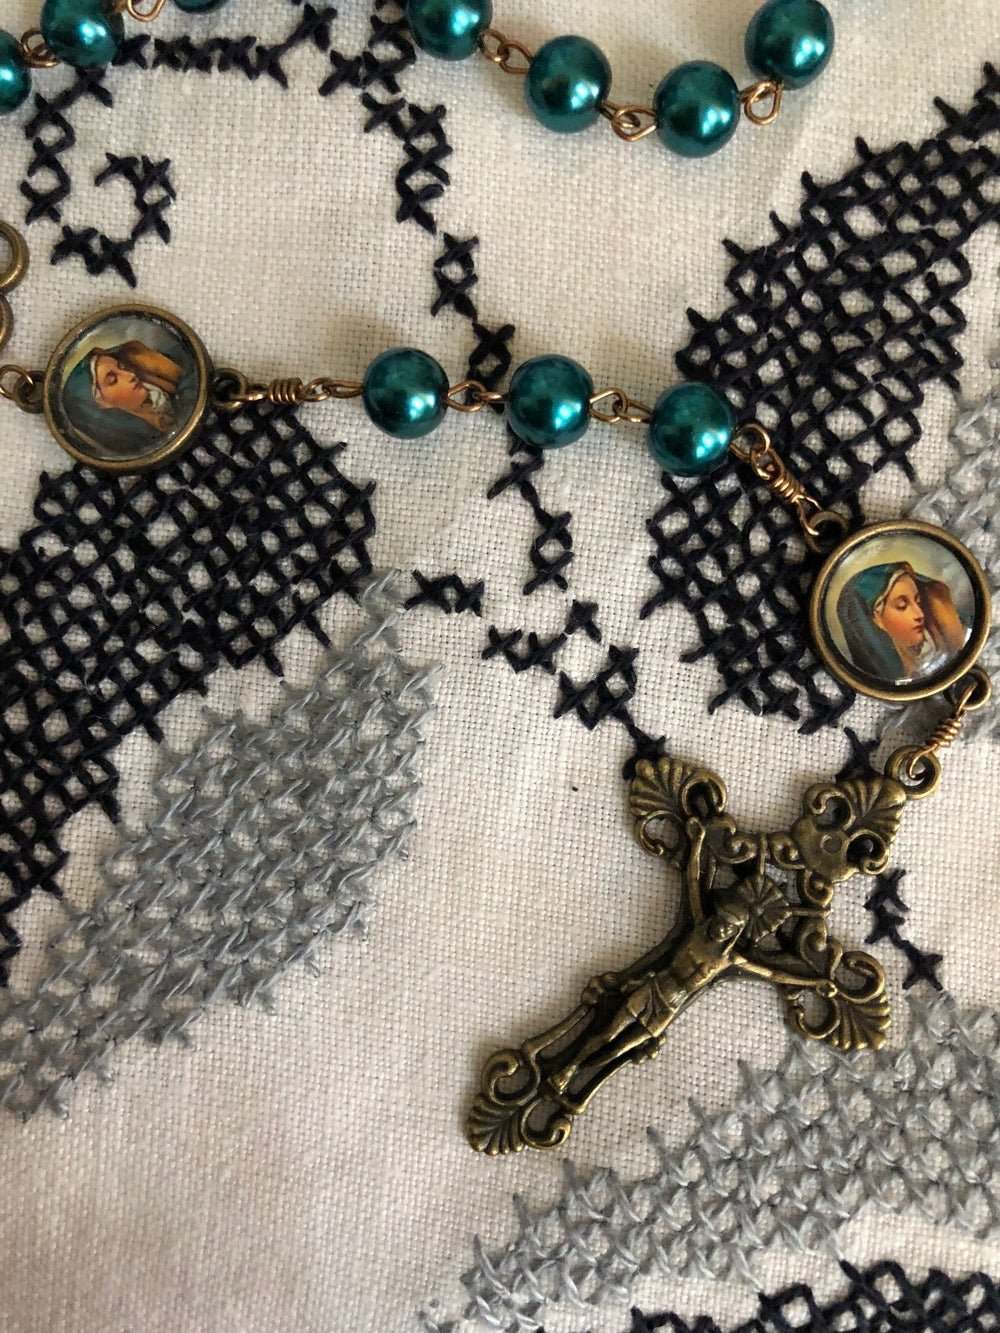 Our Lady of Sorrows Teal Pearl Bronze Rosary with Filigree Crucifix by Shannon